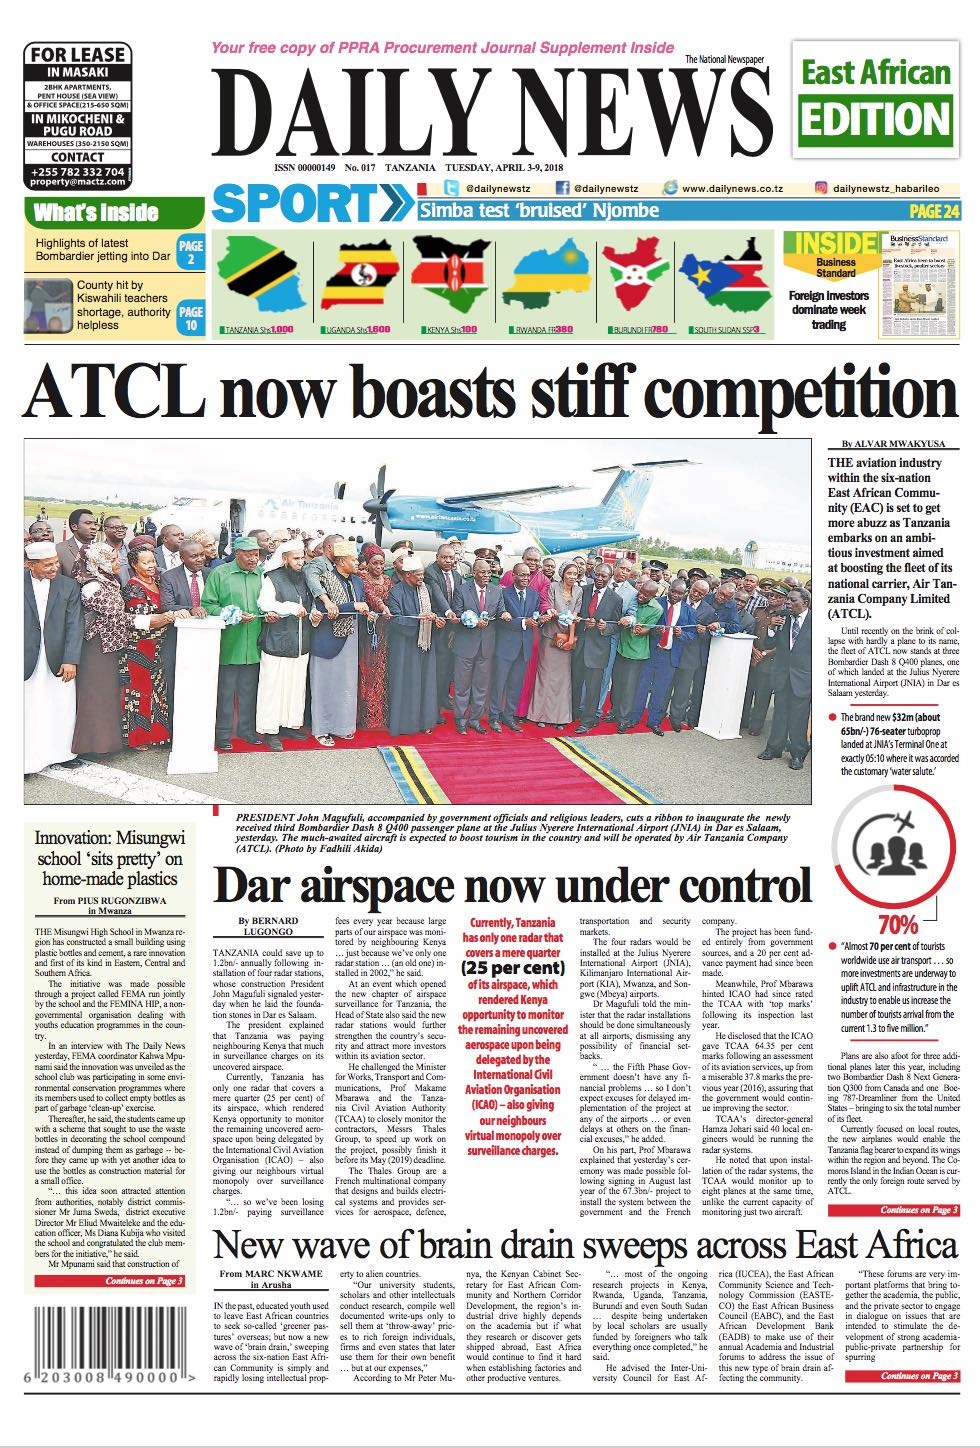 ATCL NOW BOASTS STIFF COMPETITION